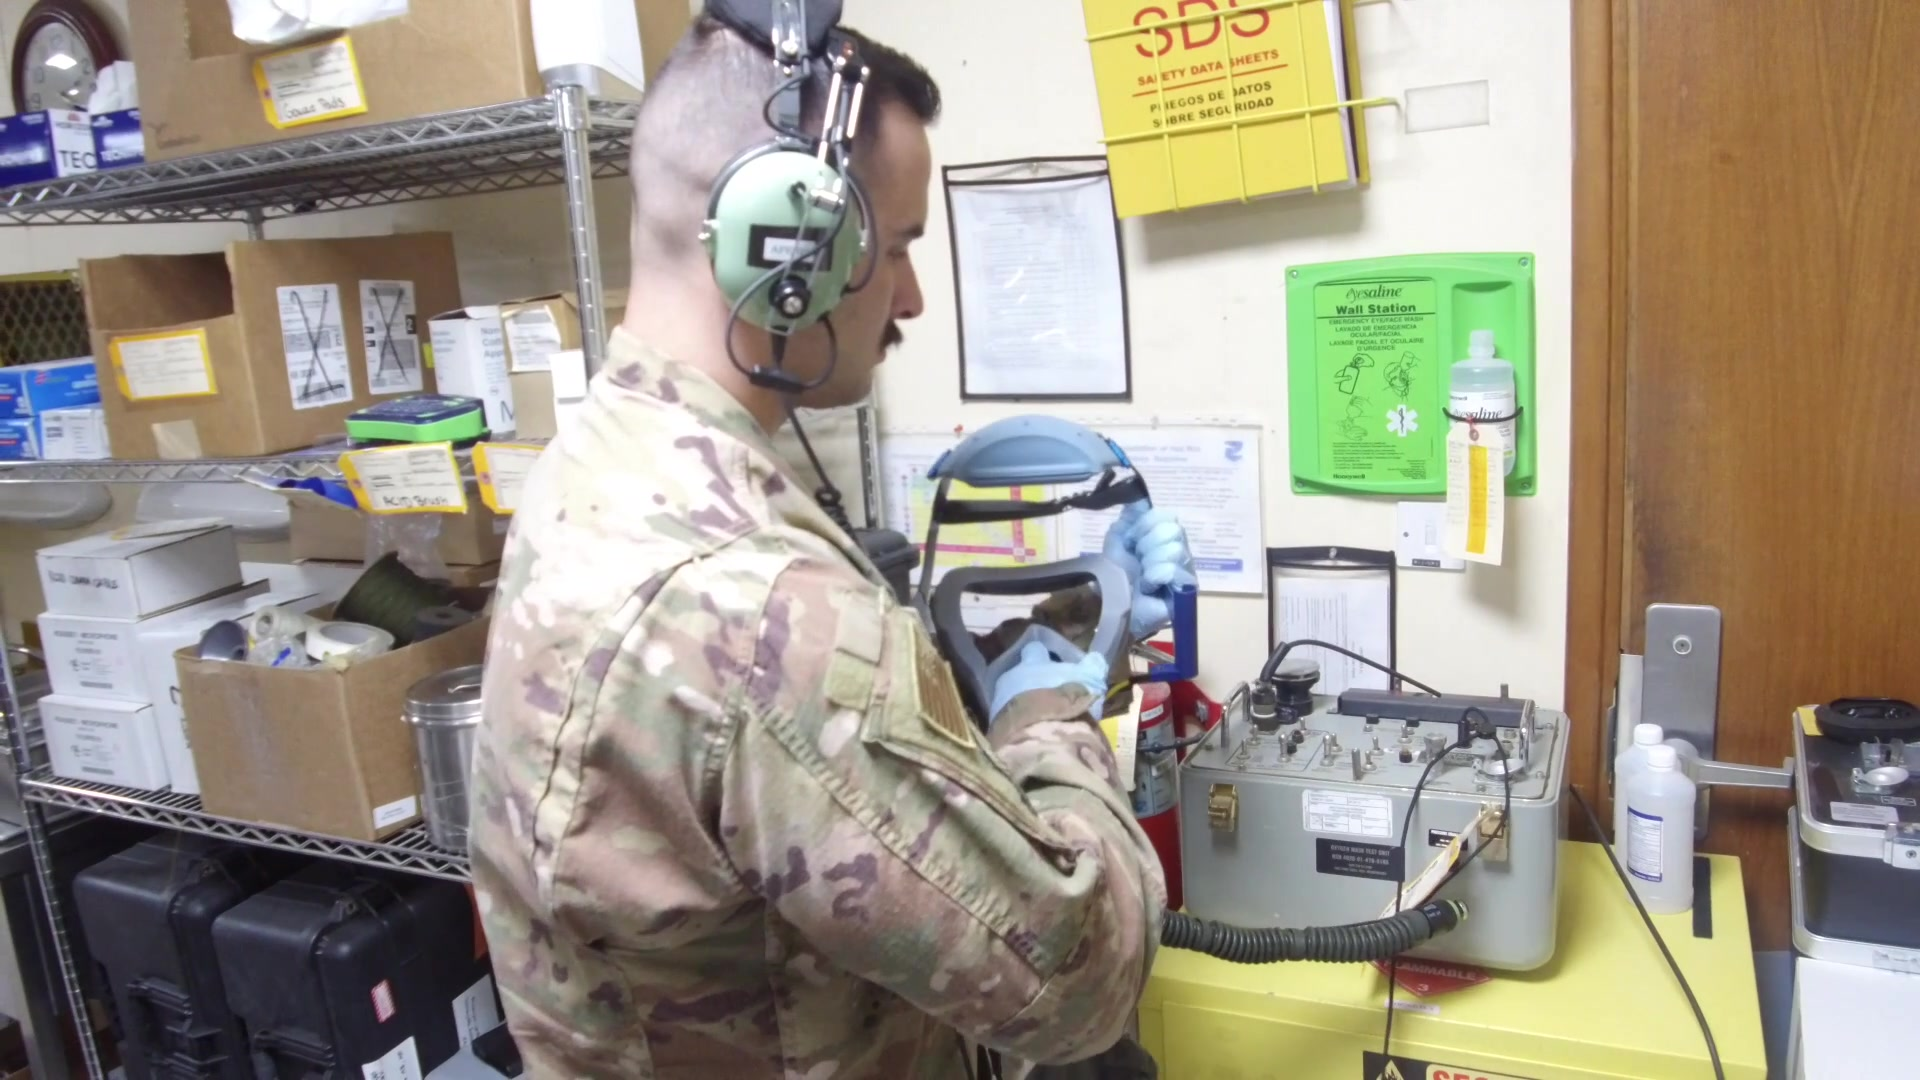 Aircrew Flight Equipment supplies the lifesaving equipment that ensures aircrew can continue with the mission in case of an in-flight emergency.